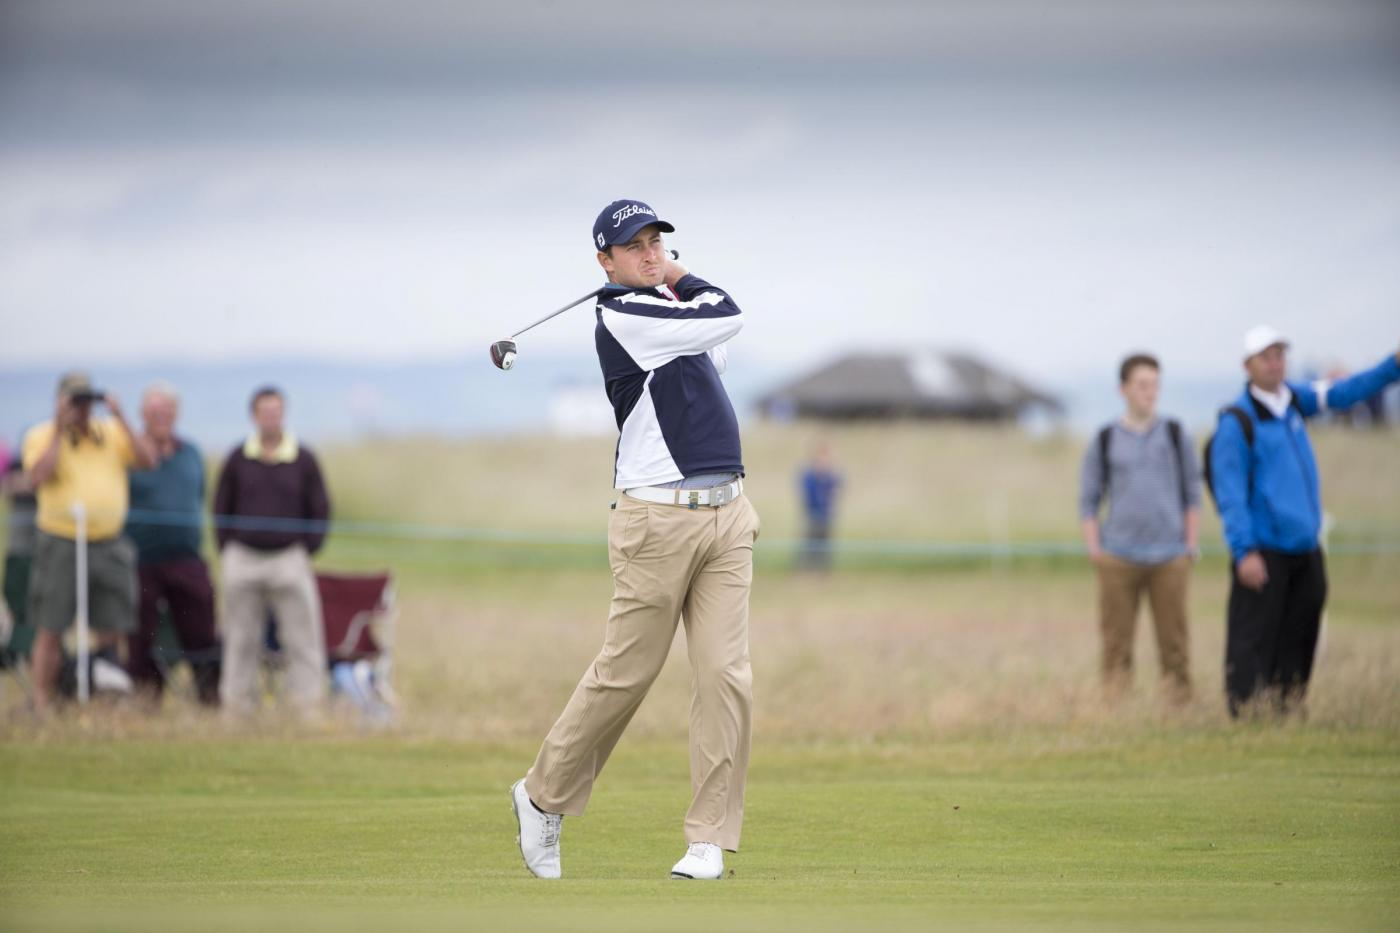 Englishman Daniel Brooks plays his 2nd shot to the 16thduring day two of the Scottish Open at Gullane Golf Club, East Lothian. PRESS ASSOCIATION Photo. Picture date: Friday July 10, 2015. See PA story GOLF Gullane. Photo credit should read: Kenny Smith/PA Wire. RESTRICTIONS: Editorial use only. No commercial use. No false commercial association. No video emulation. No manipulation of images.